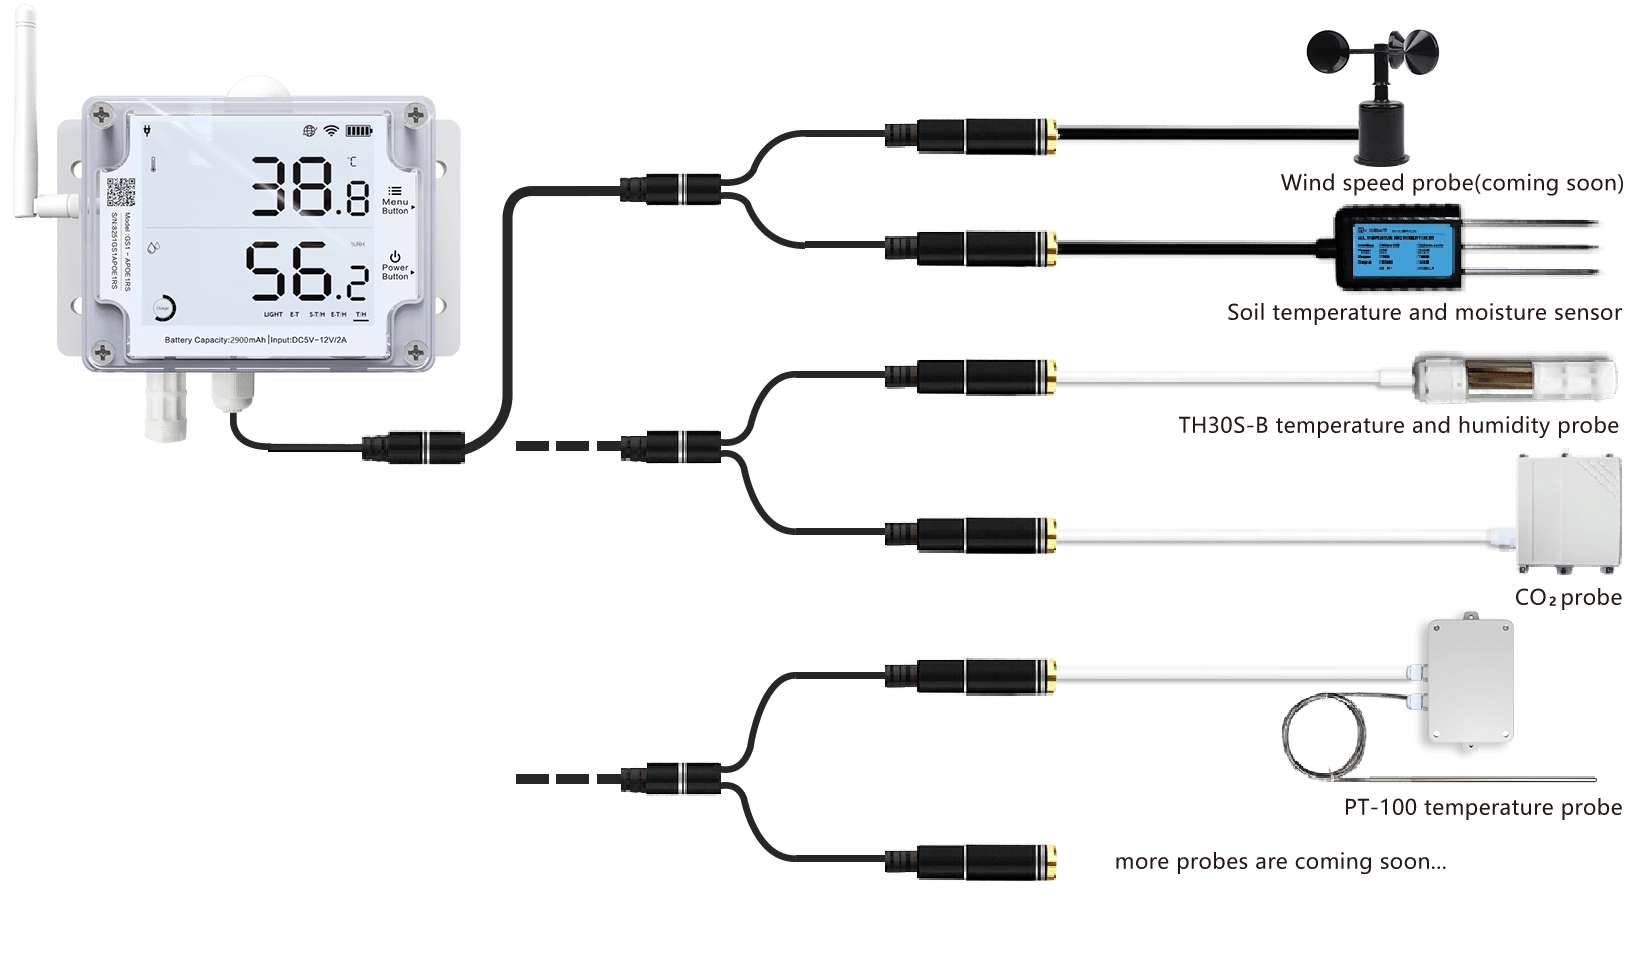 temperature sensor with external probes